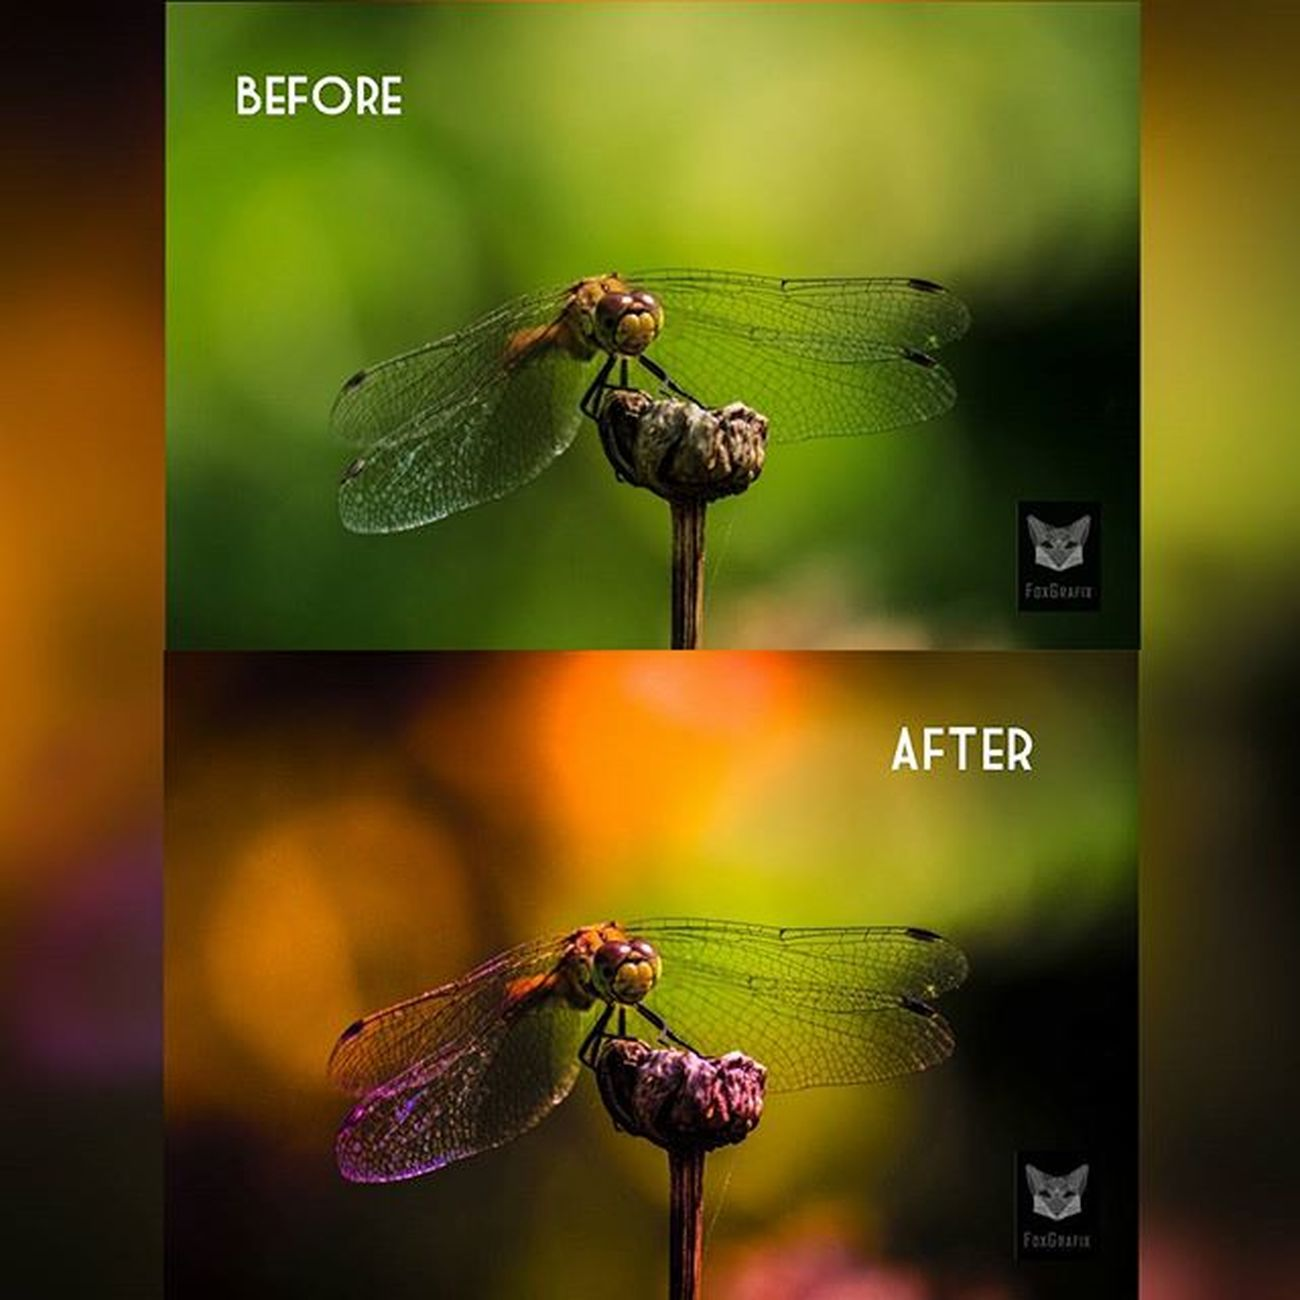 Before and after, image editing, photoshop and lightroom 😄 What do you think? Heidelibelle/Darter Photographyislife Photgraphy Fotografie Braunschweig Riddagshausen Fototour Heidelibelle Darter Naturfoto Naturephotography Libellen Libelle Dragonfly Photoshopped Lightroom5